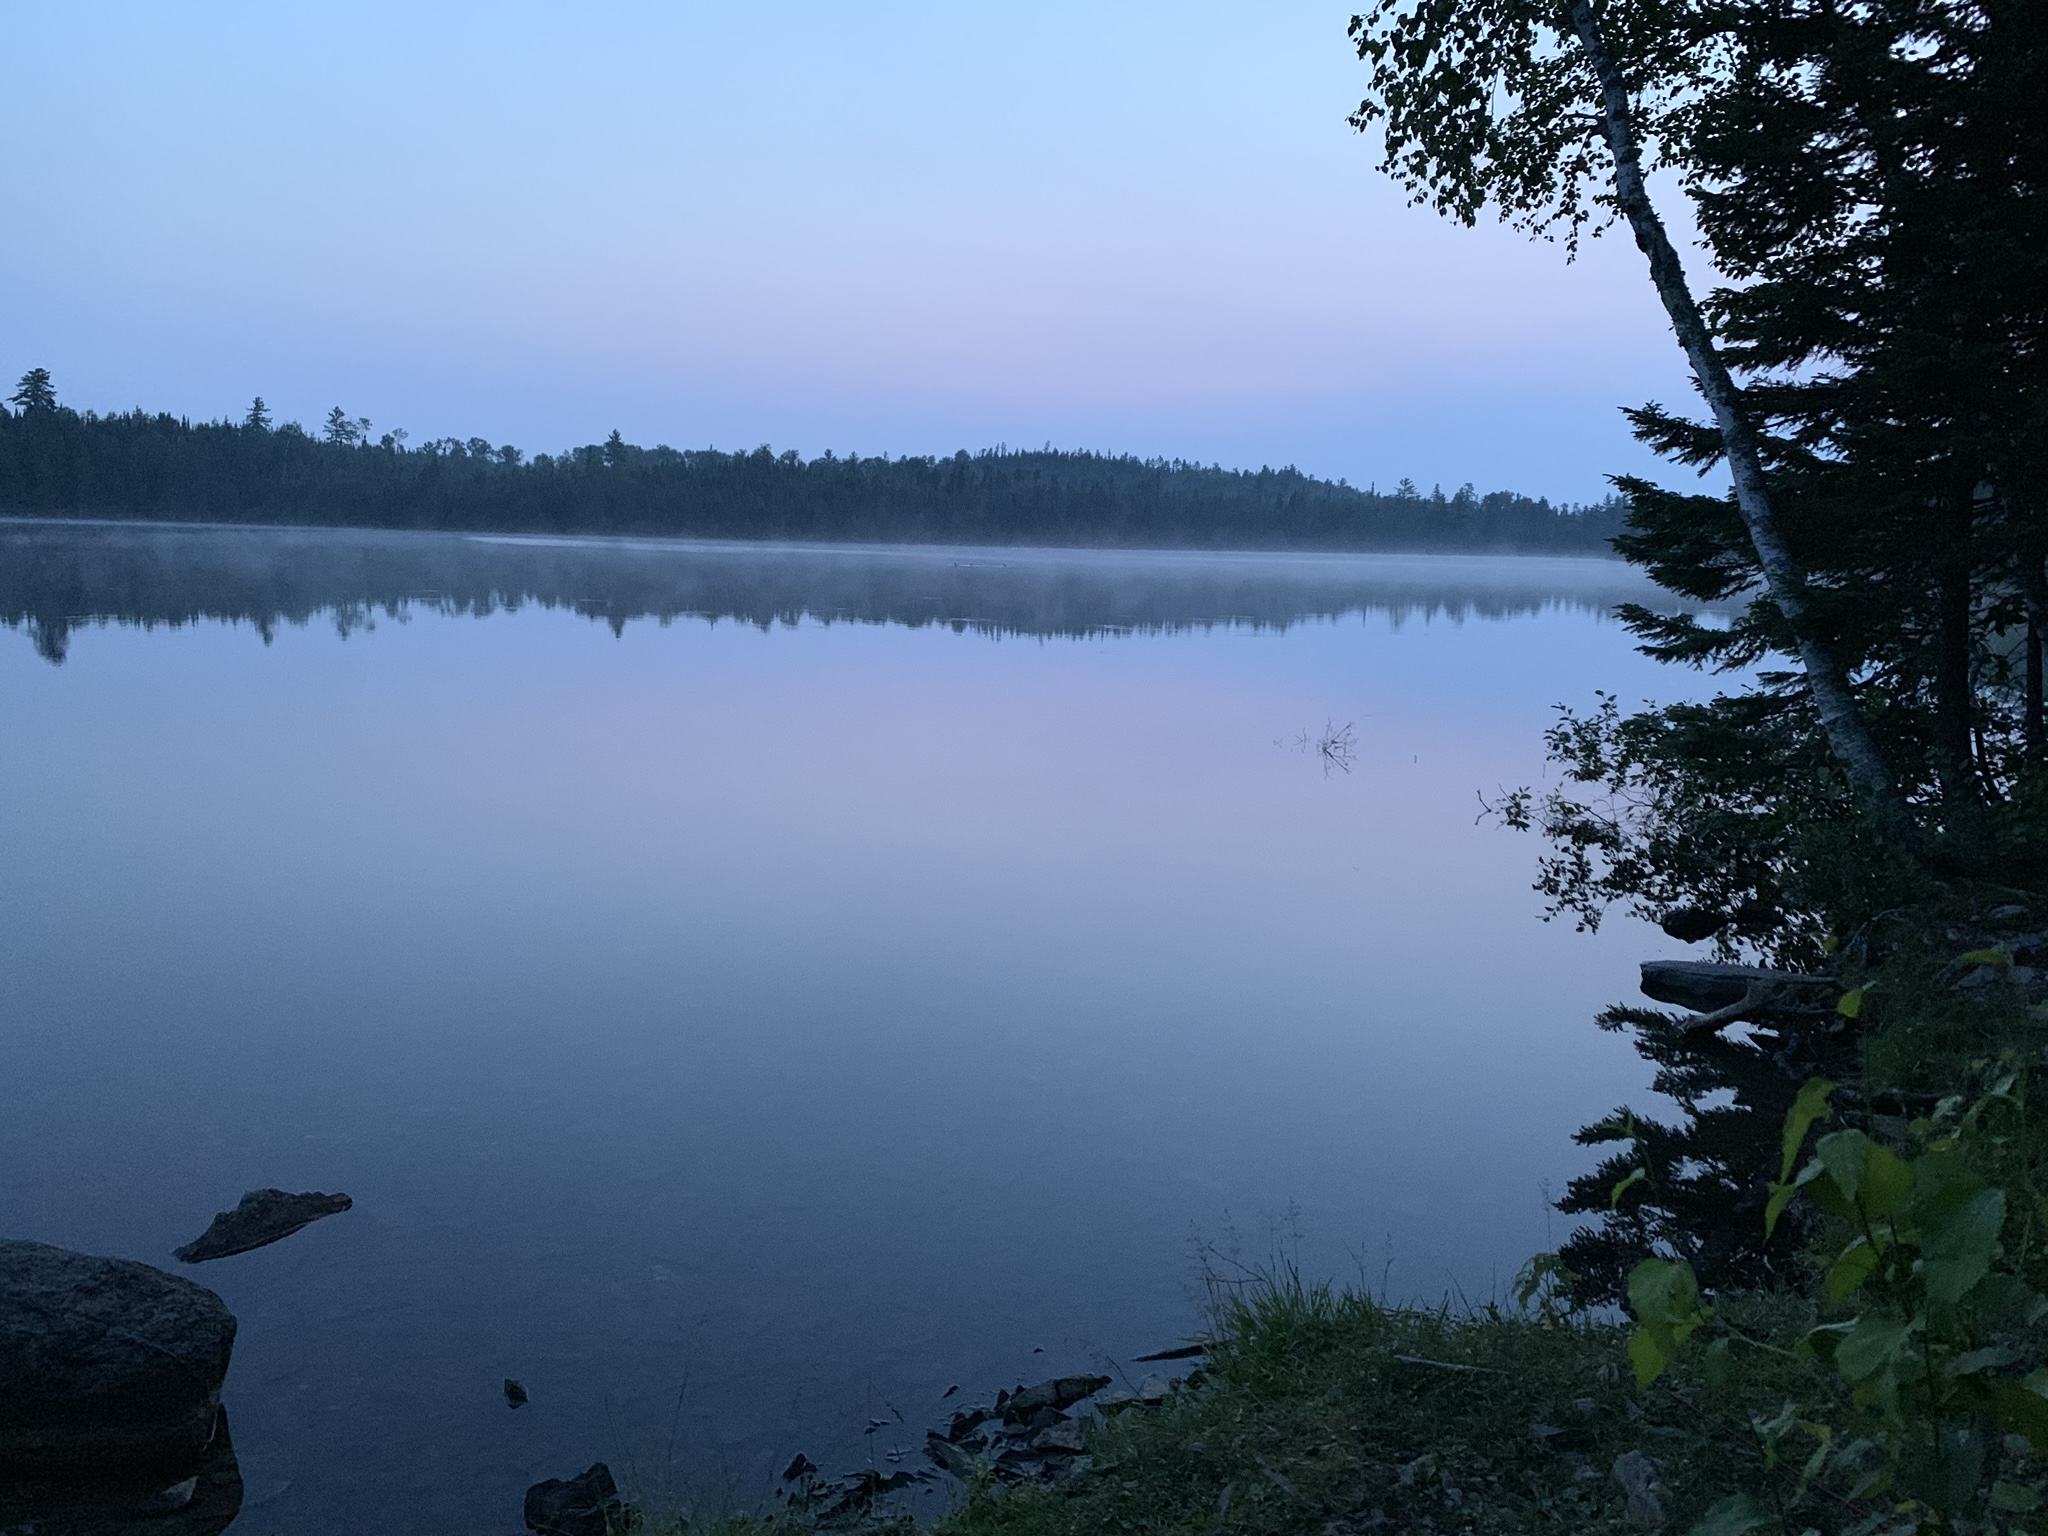 5:09 am on Birch Lake with loon in distance